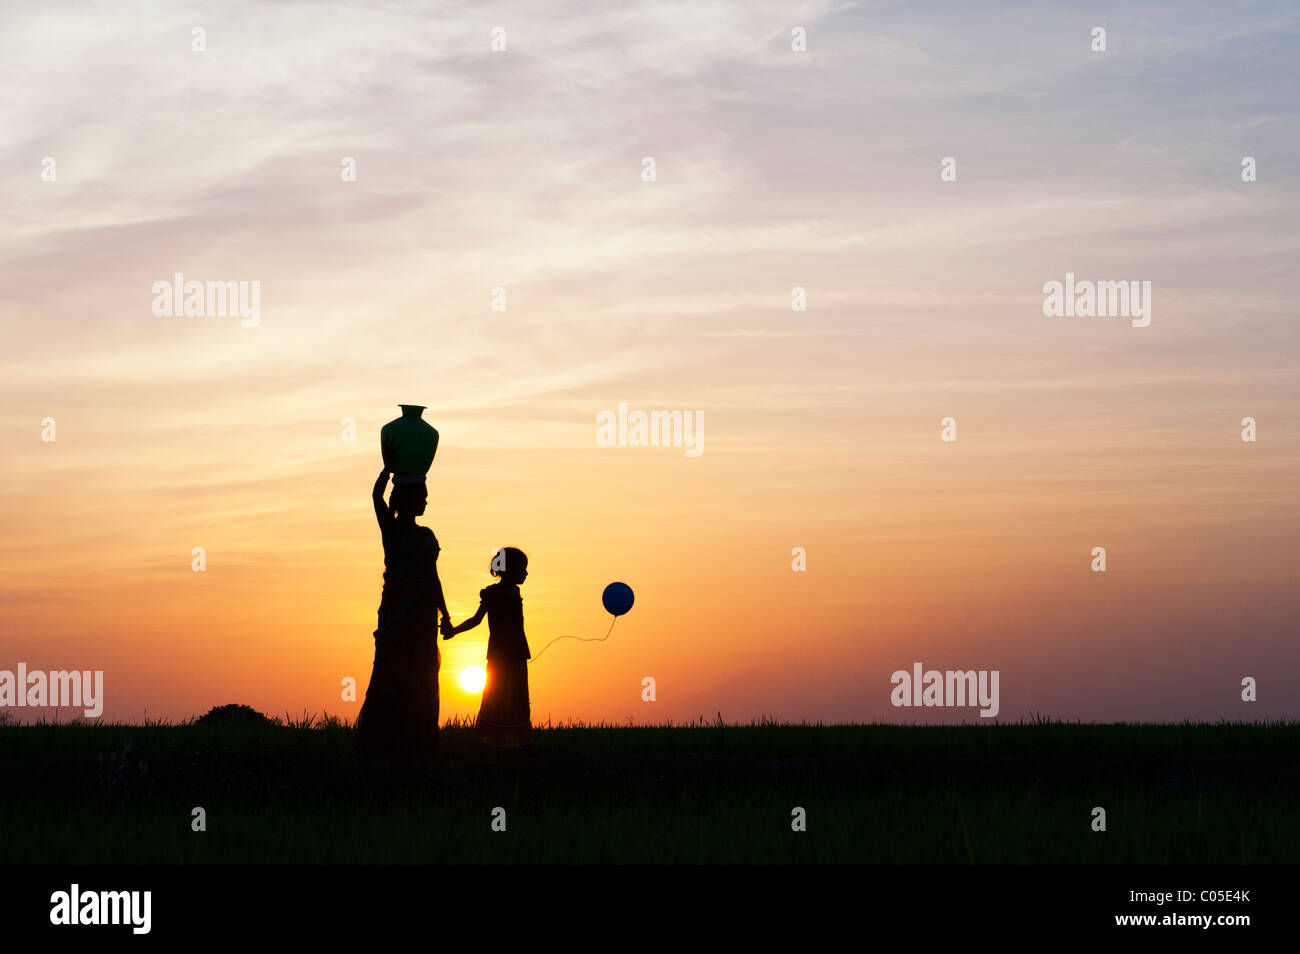 Indian mother carrying water pot with child and balloons in the indian countryside. Silhouette - Stock Image